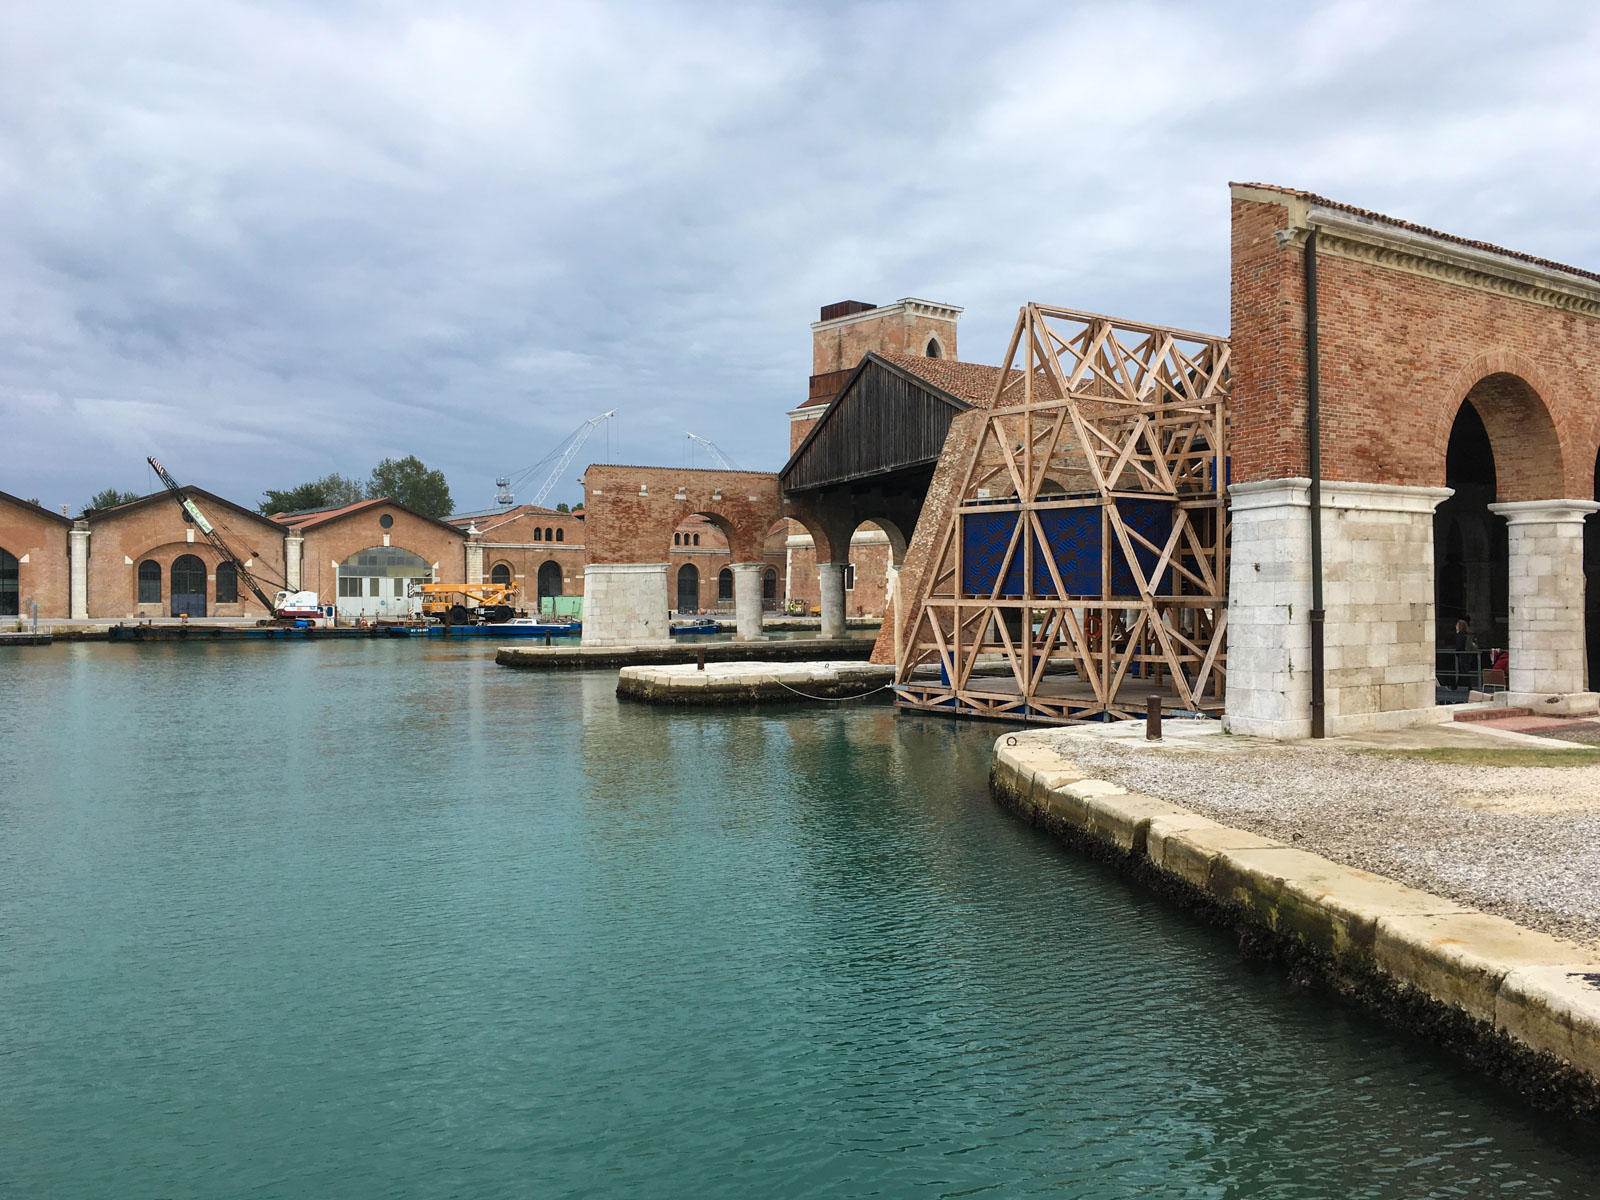 The outdoor area of the Arsenale, one of the venues of the Biennial in Venice.